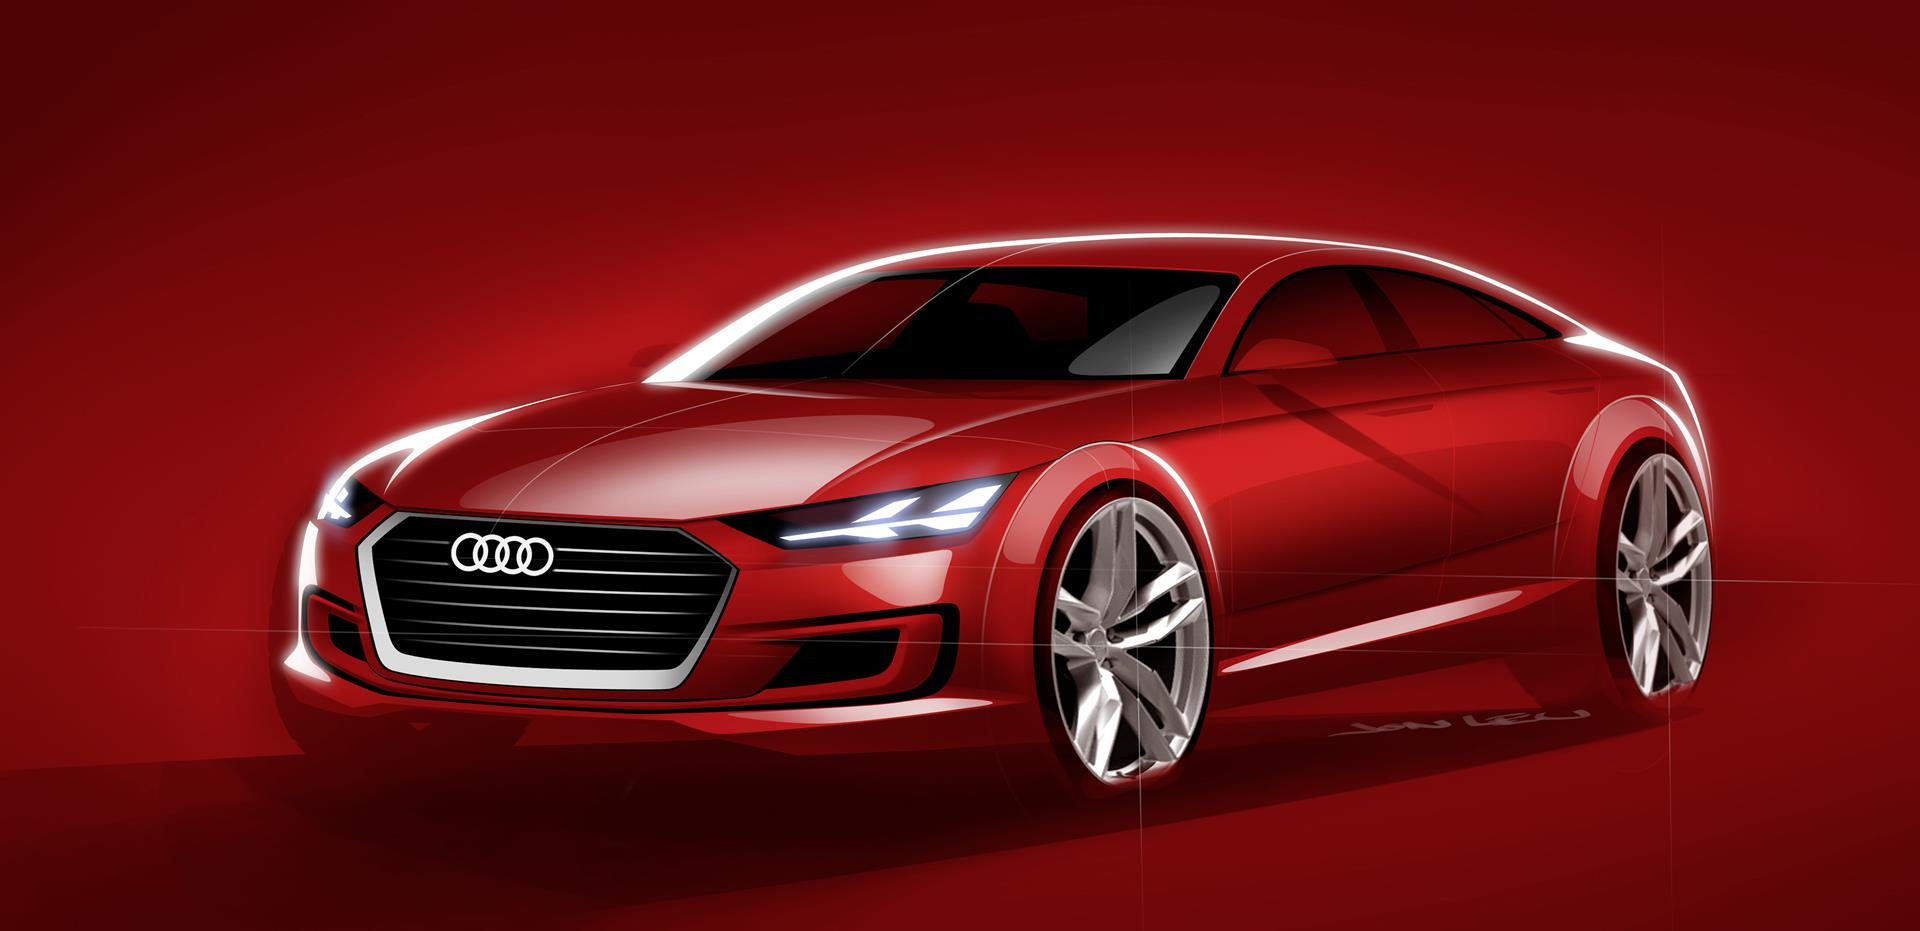 2014 Audi Tt Sportback Concept Pictures News Research